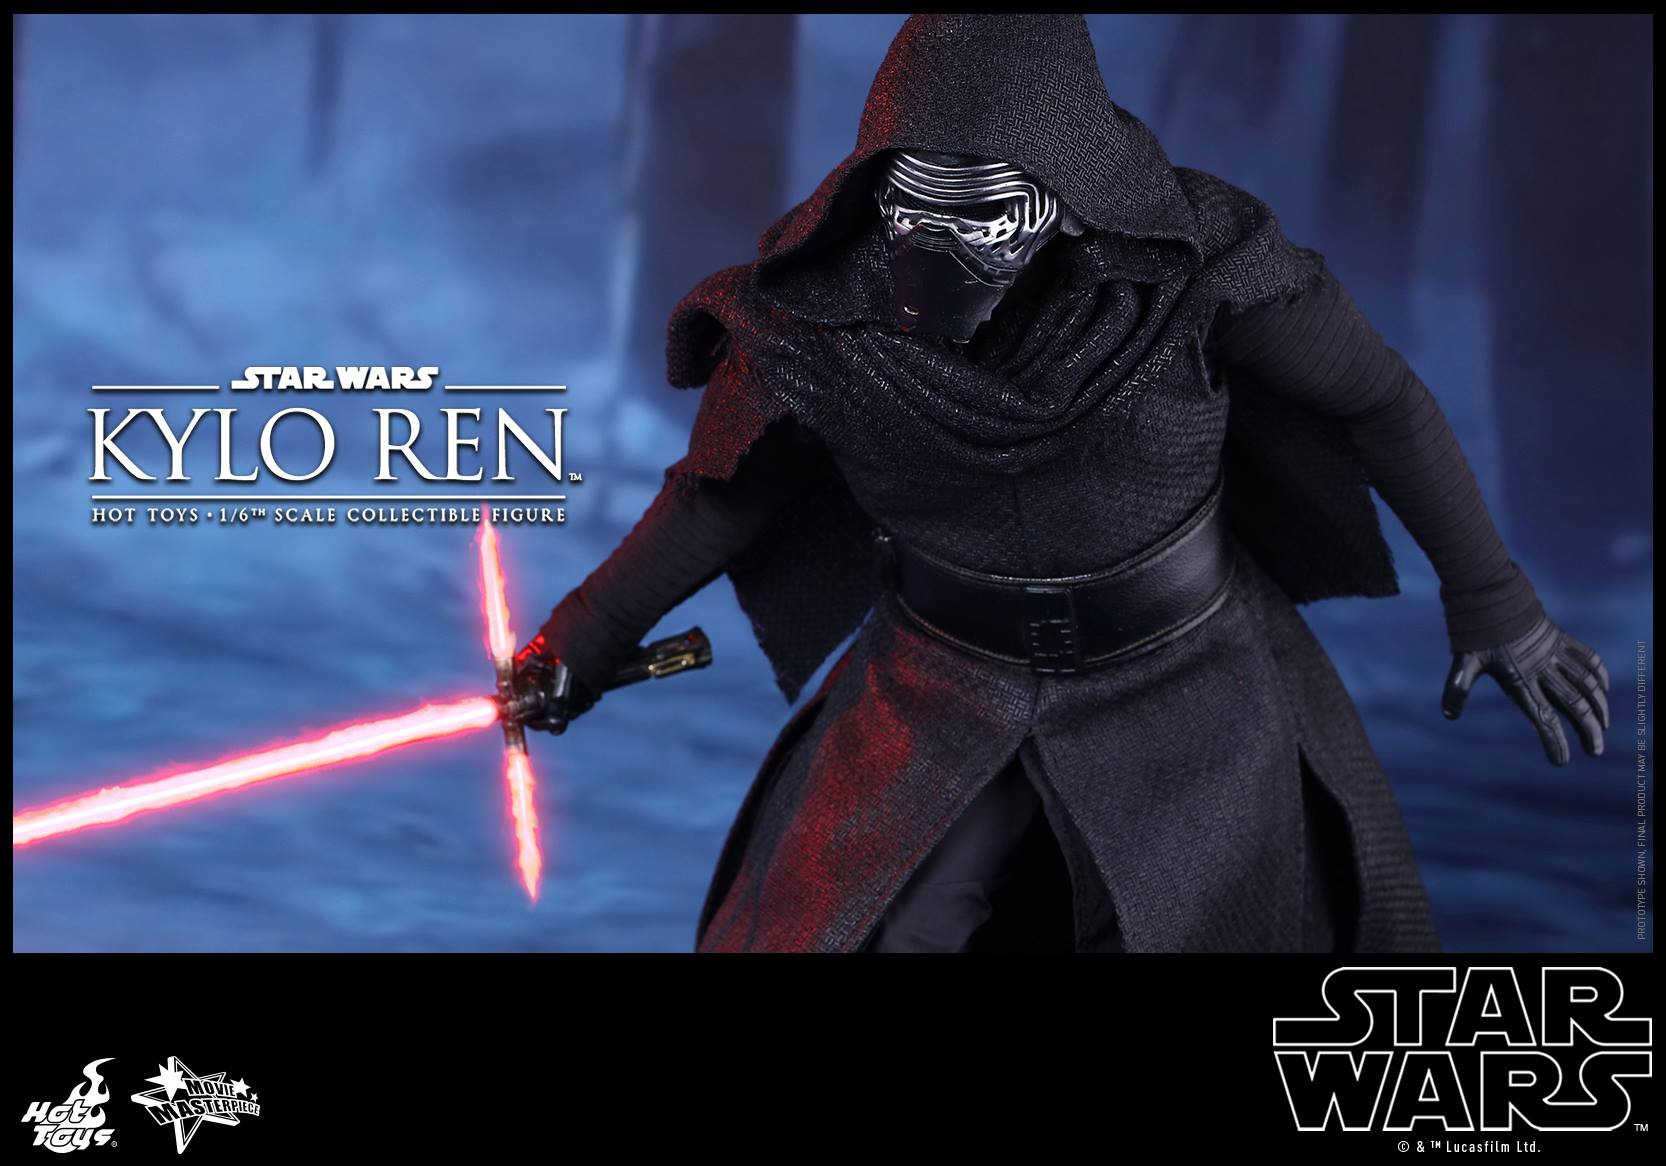 HOT TOYS - Star Wars: TFA - Kylo Ren 190398110